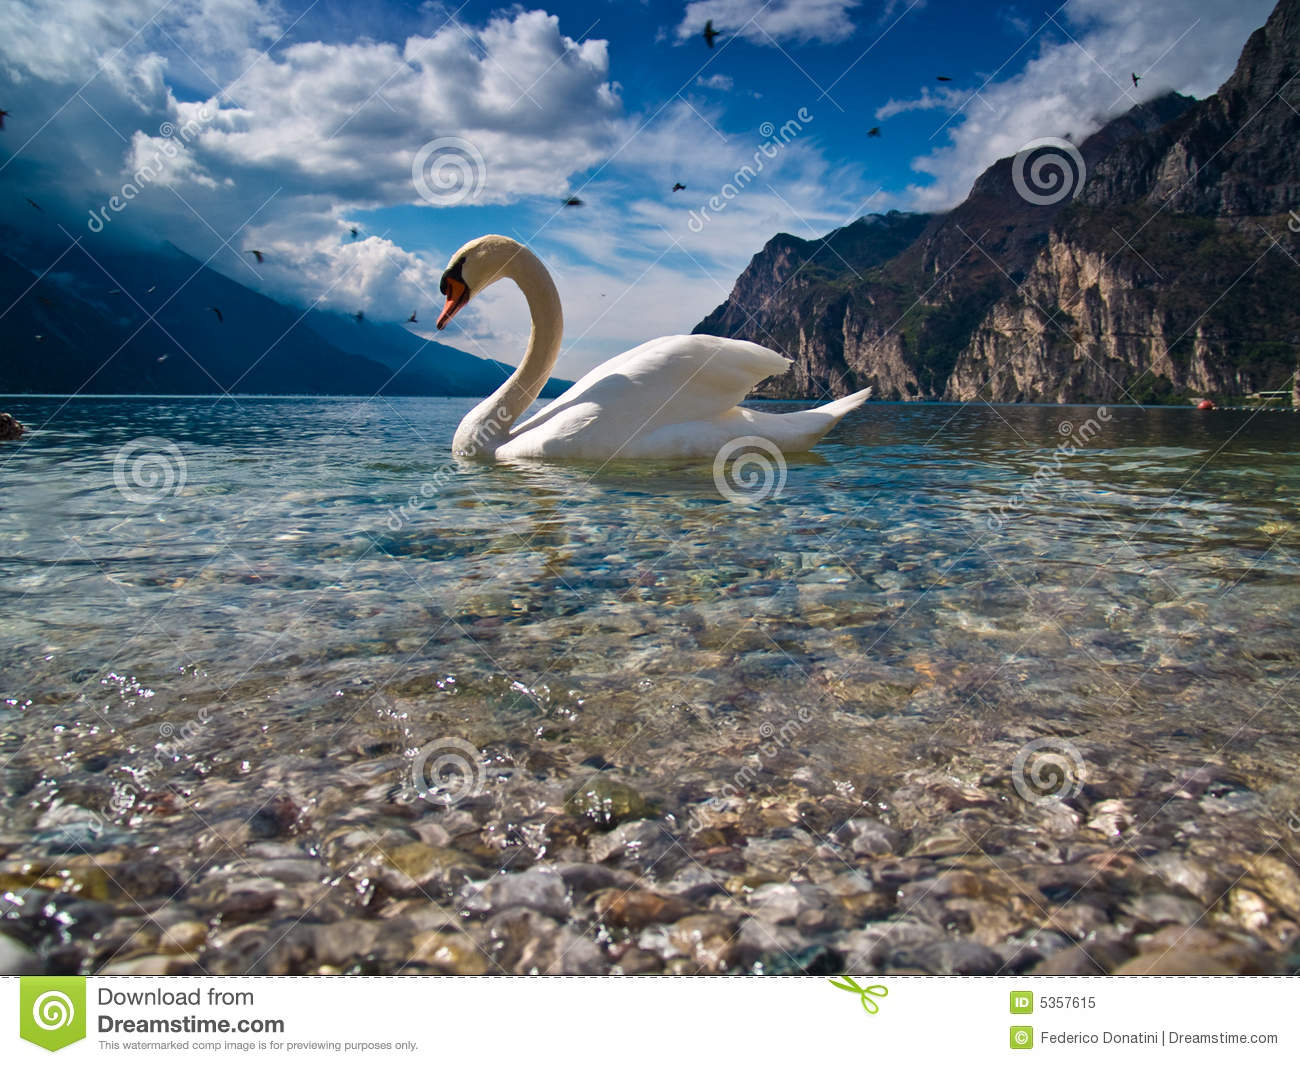 The swan and his lake